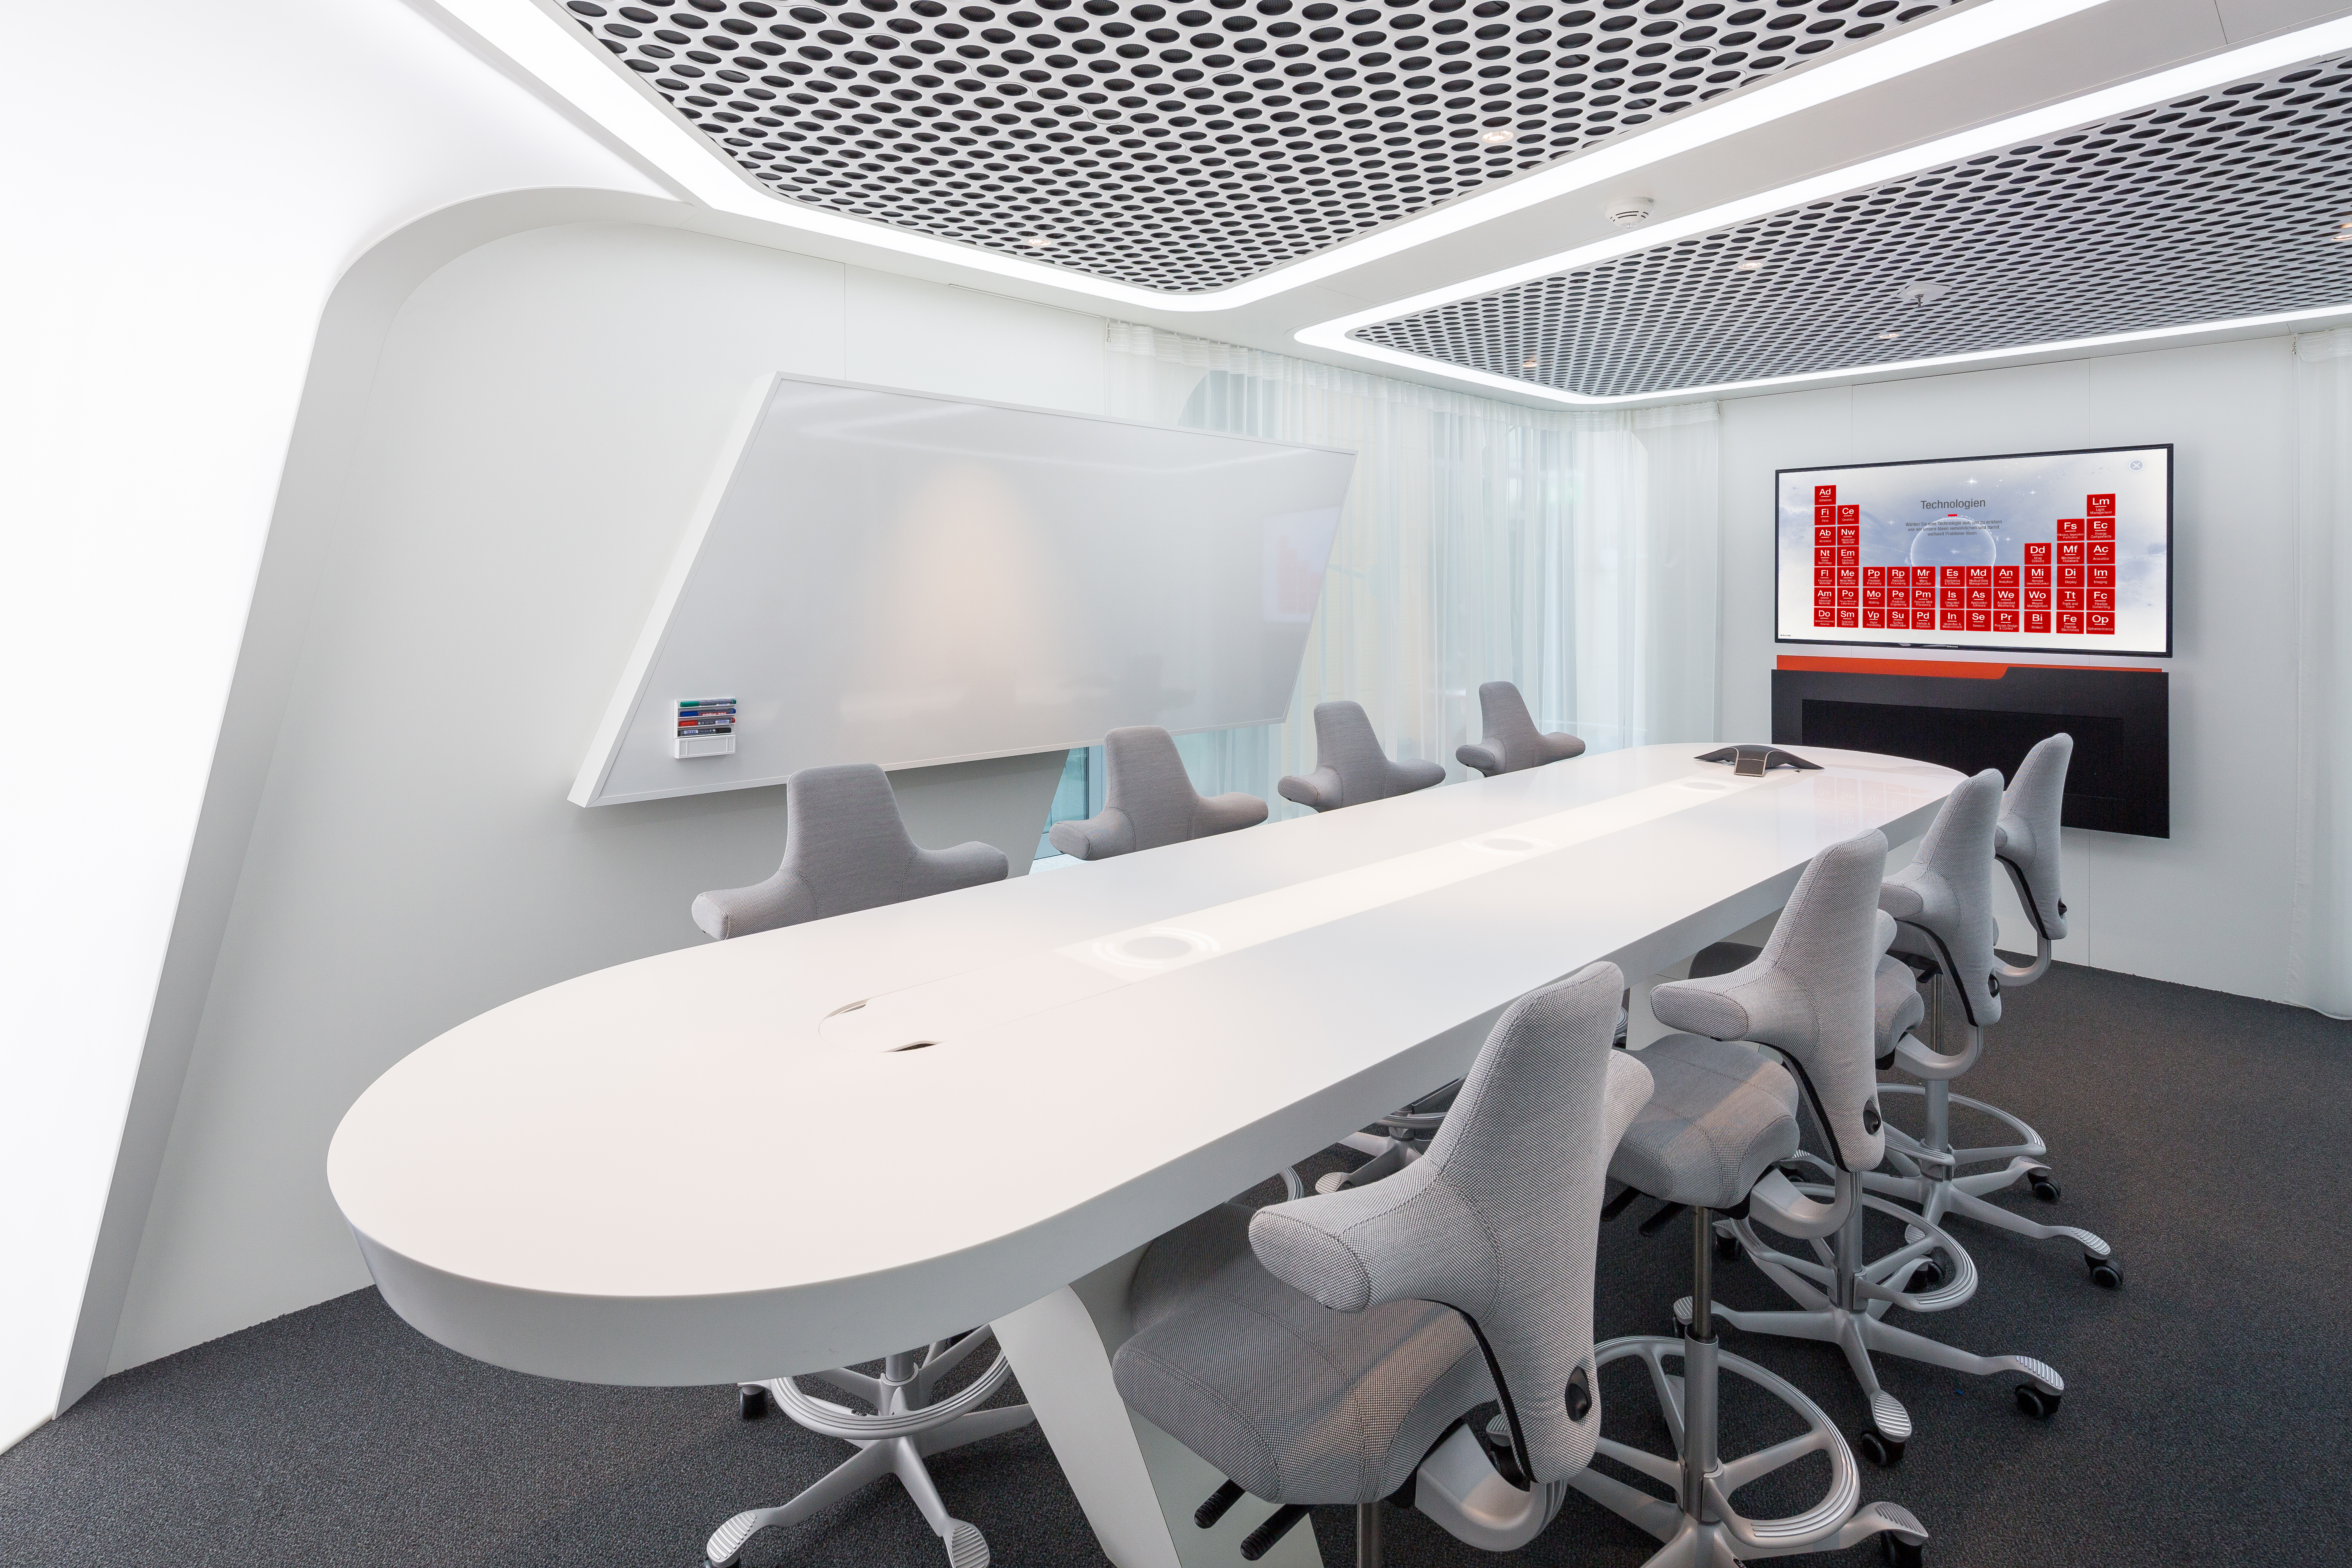 Conference room with modern chairs, whiteboard and screen